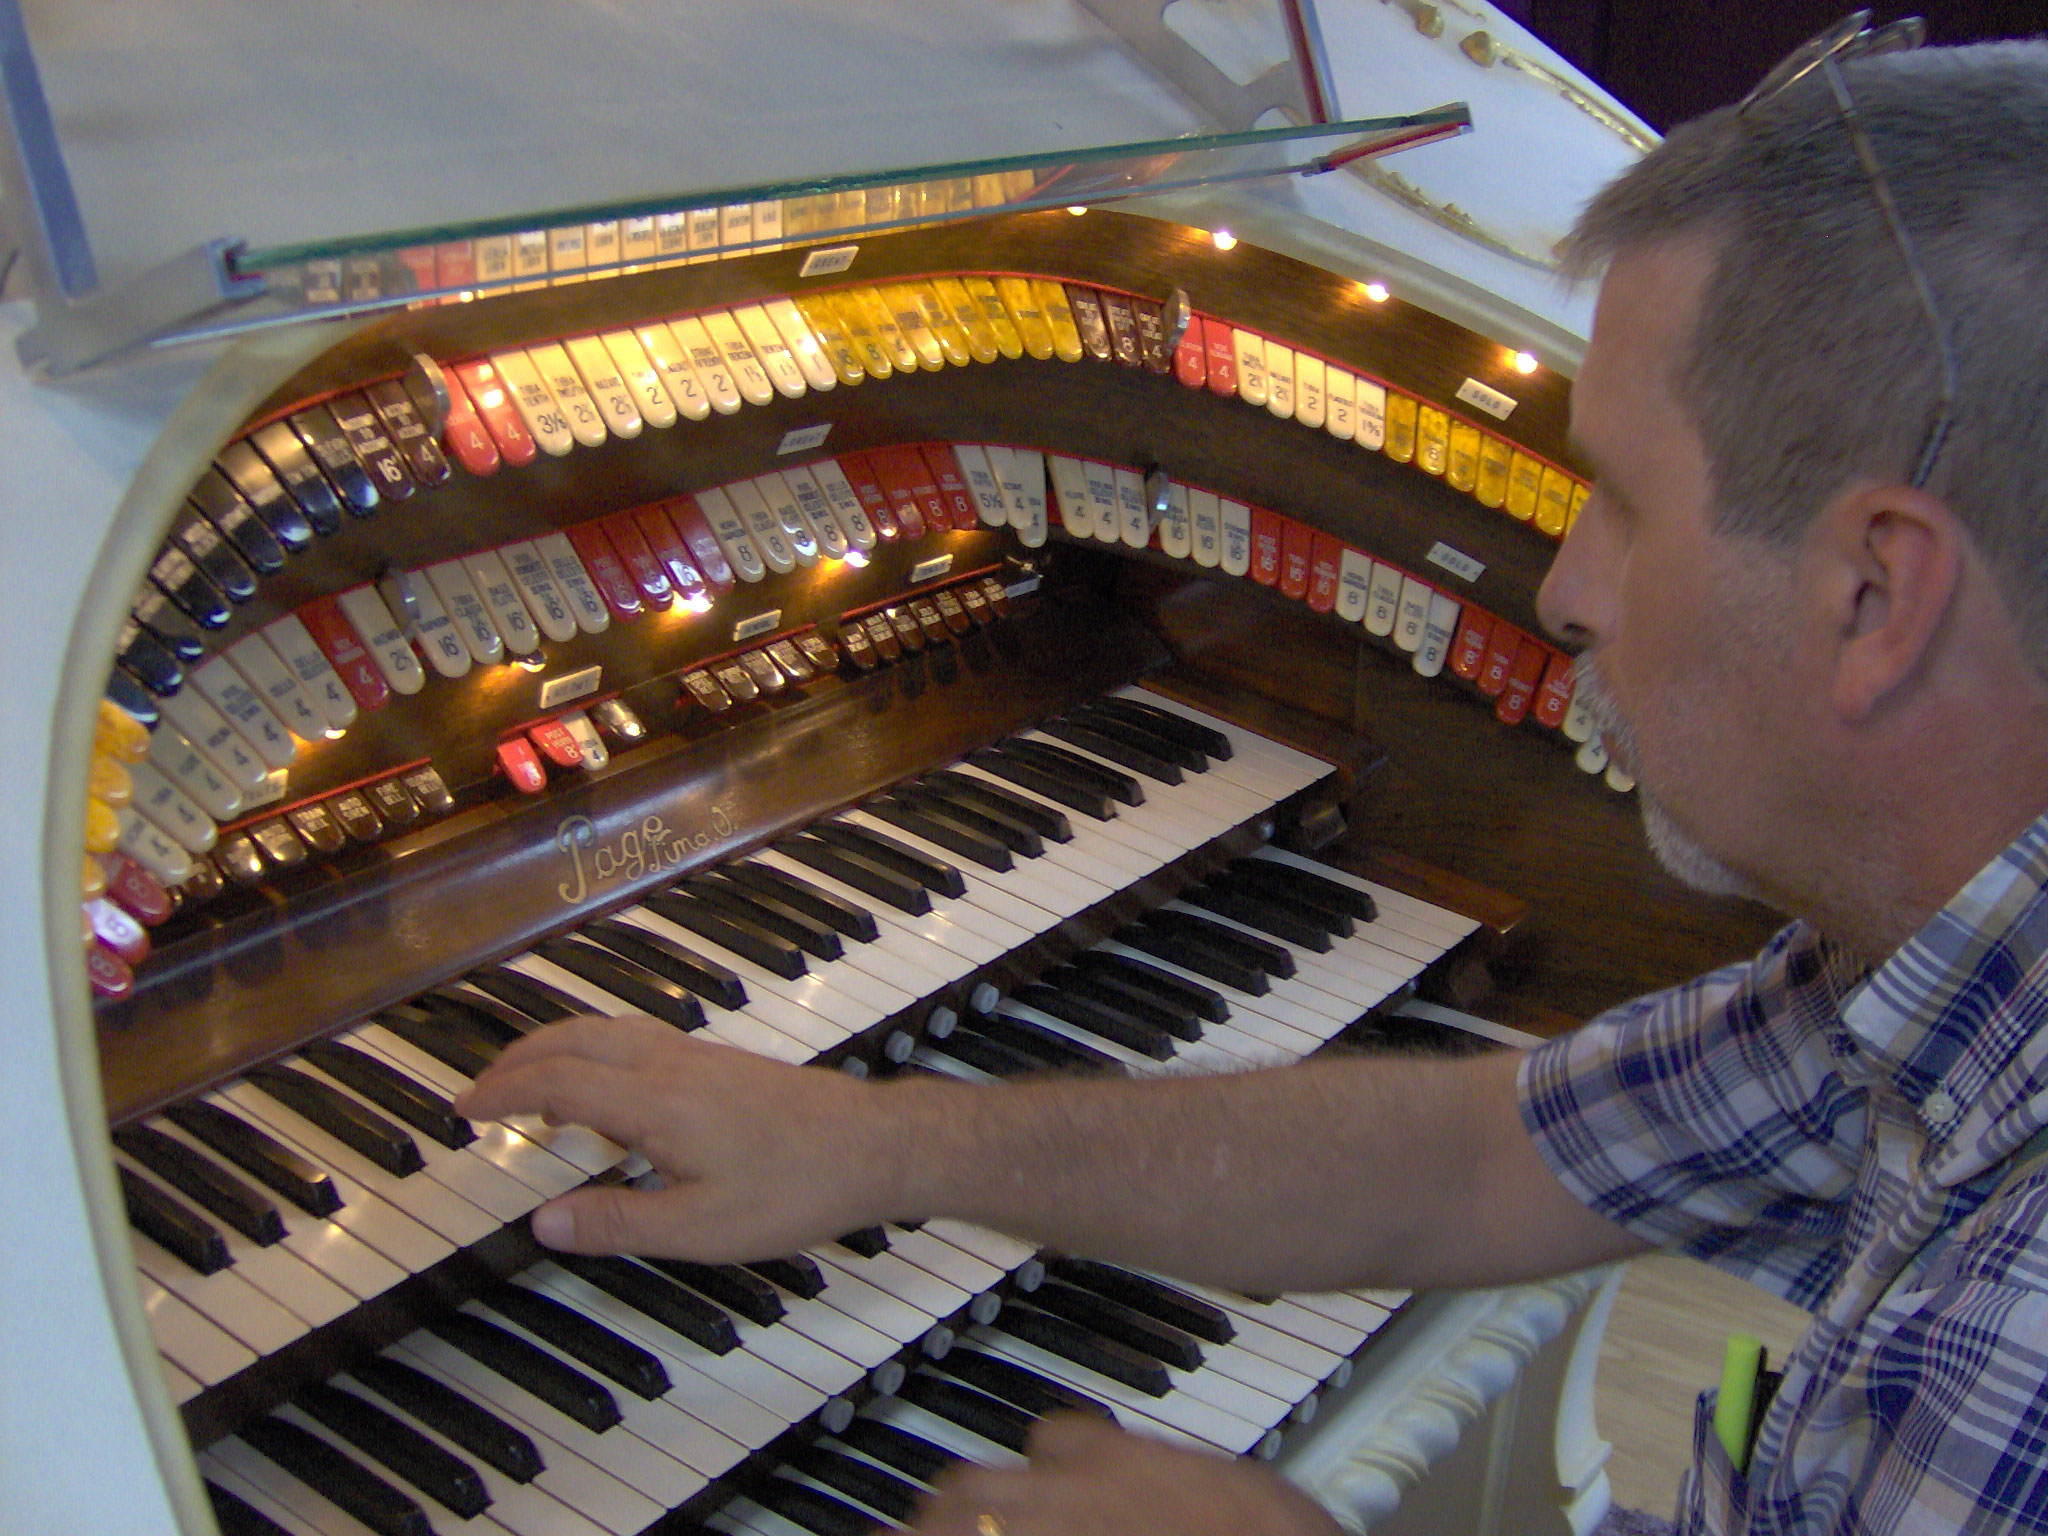 Click here to download a 2048 x 1536 JPG image showing Tom Hoehn at the console of the 3/12 Grande Page Theatre Pipe Organ.